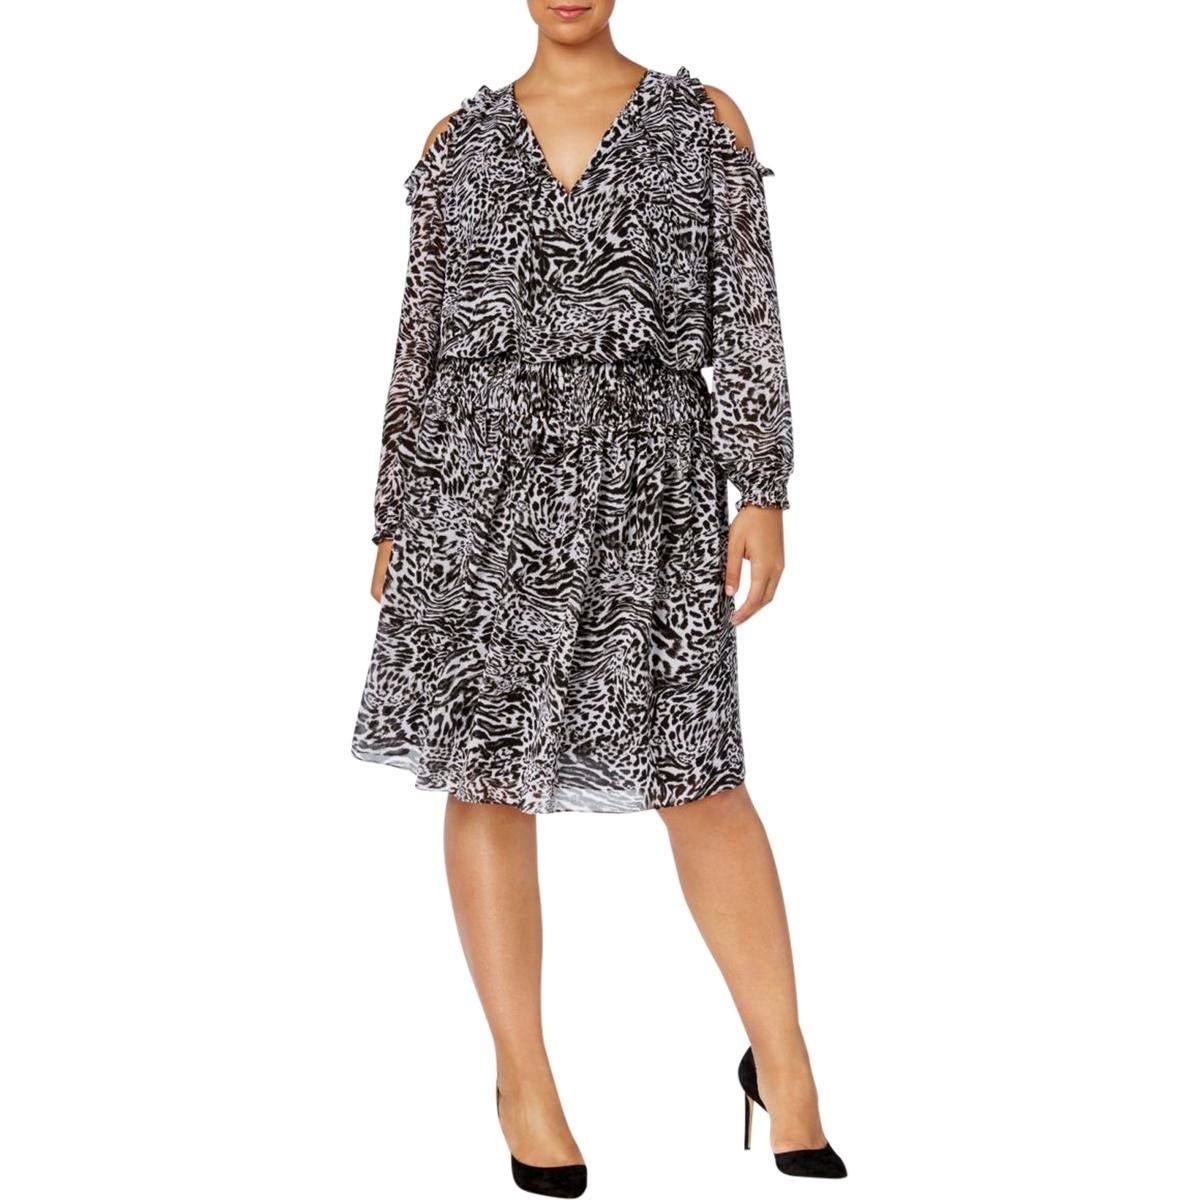 aa00034108 Shop MICHAEL Michael Kors Womens Plus Cocktail Dress Animal Print Cold  Shoulder - Free Shipping On Orders Over  45 - Overstock - 22832572